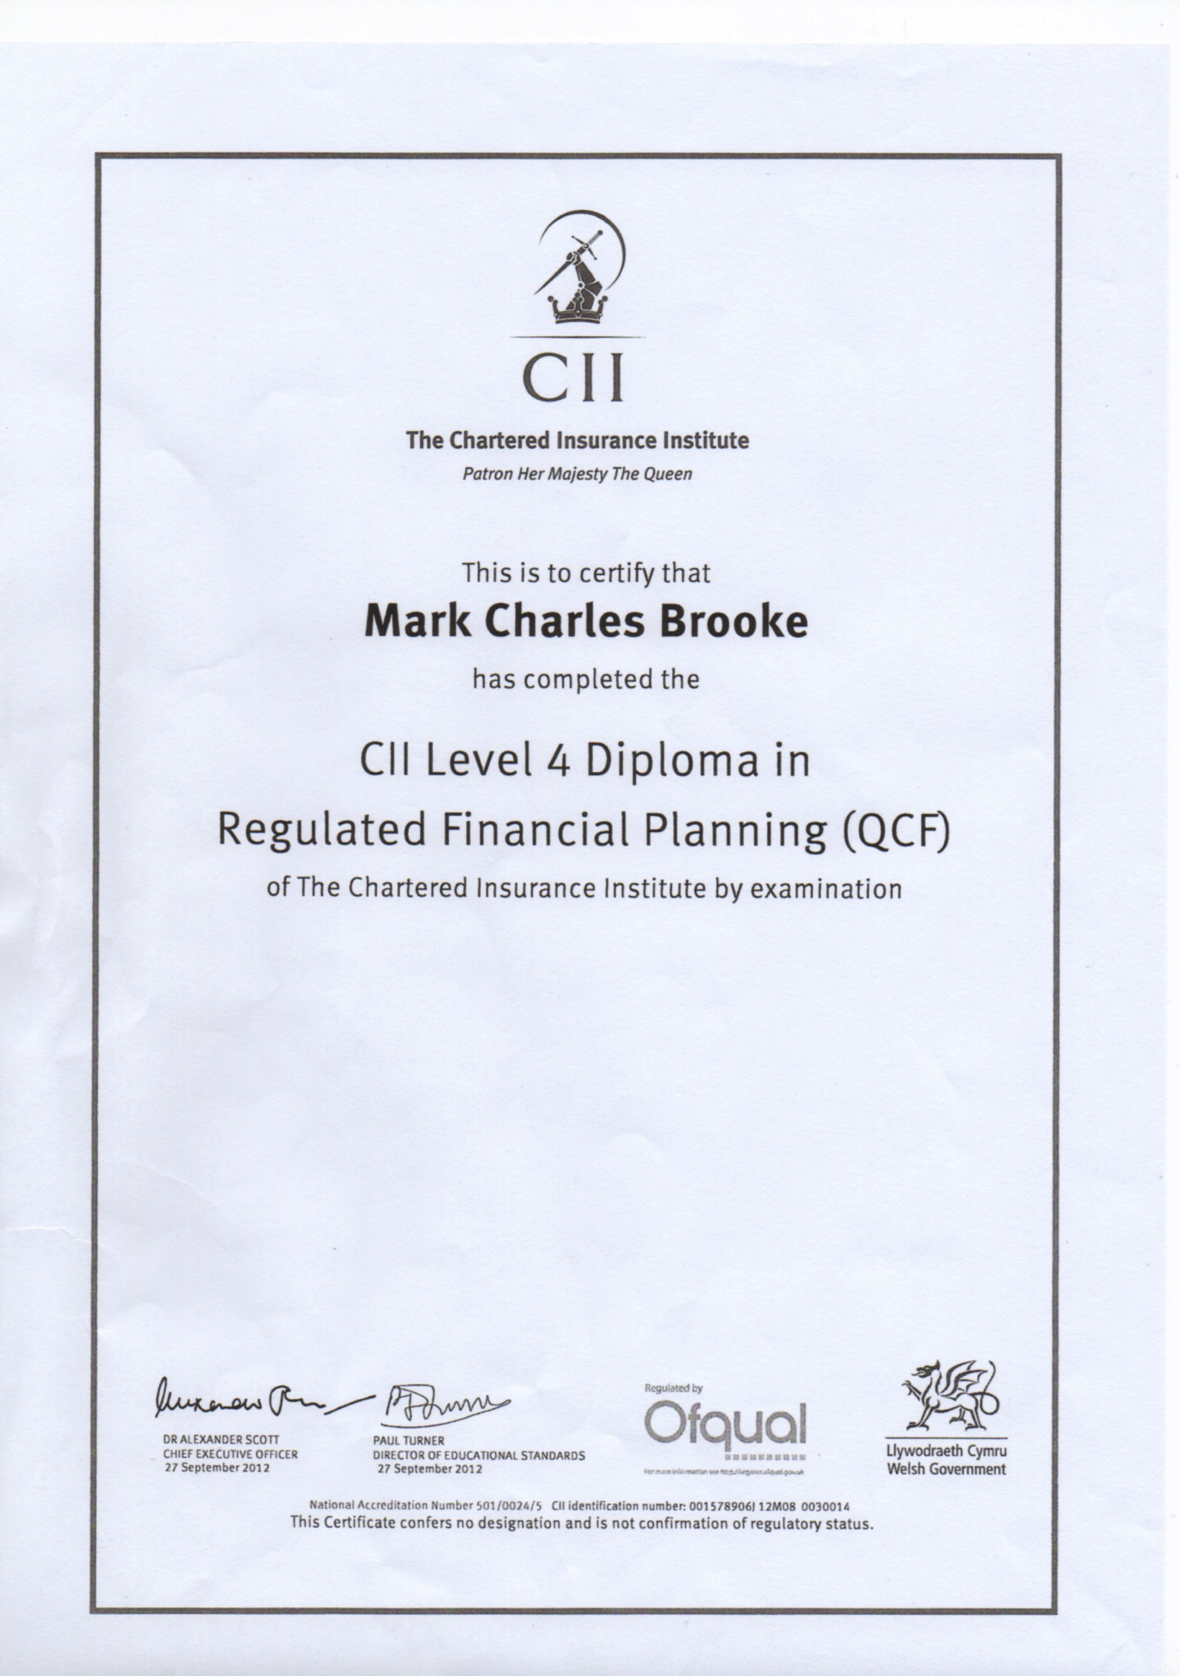 CII-Diploma-in-Regulated-Financial-Planning-Level-4-QCF-for-Mark-Brooke-2016-09-09